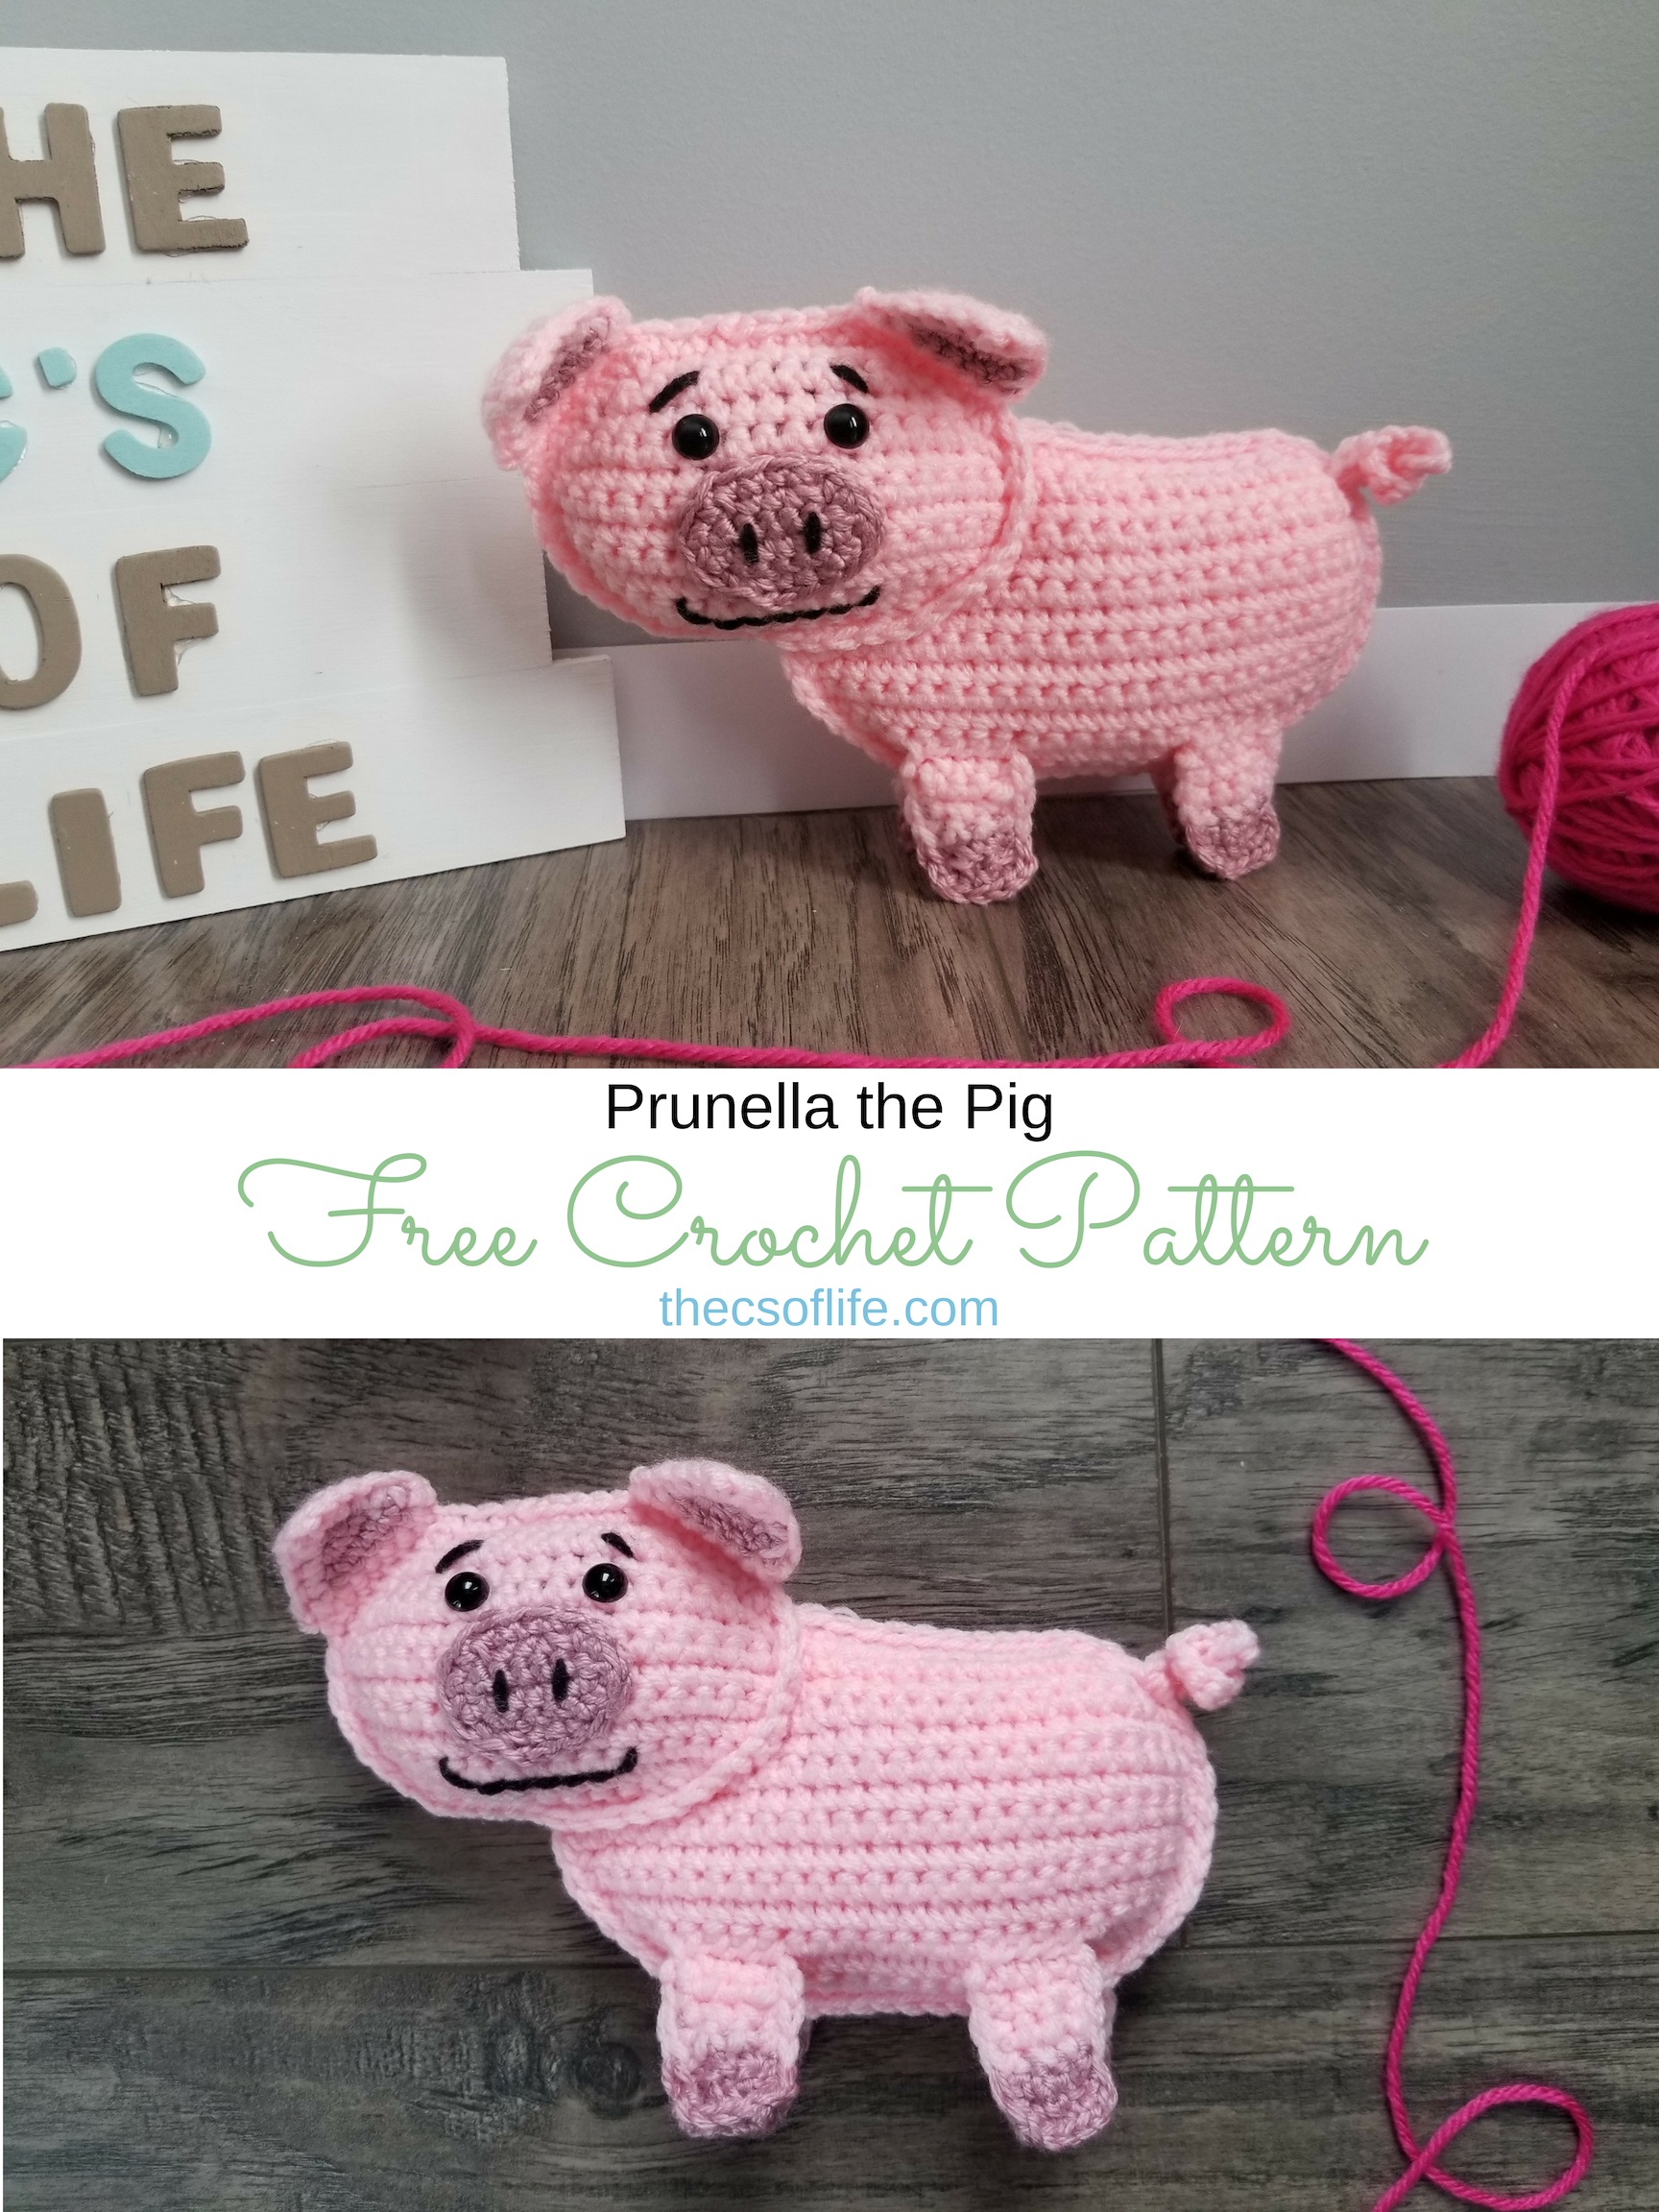 Prunella the Pig - Free Crochet Pattern